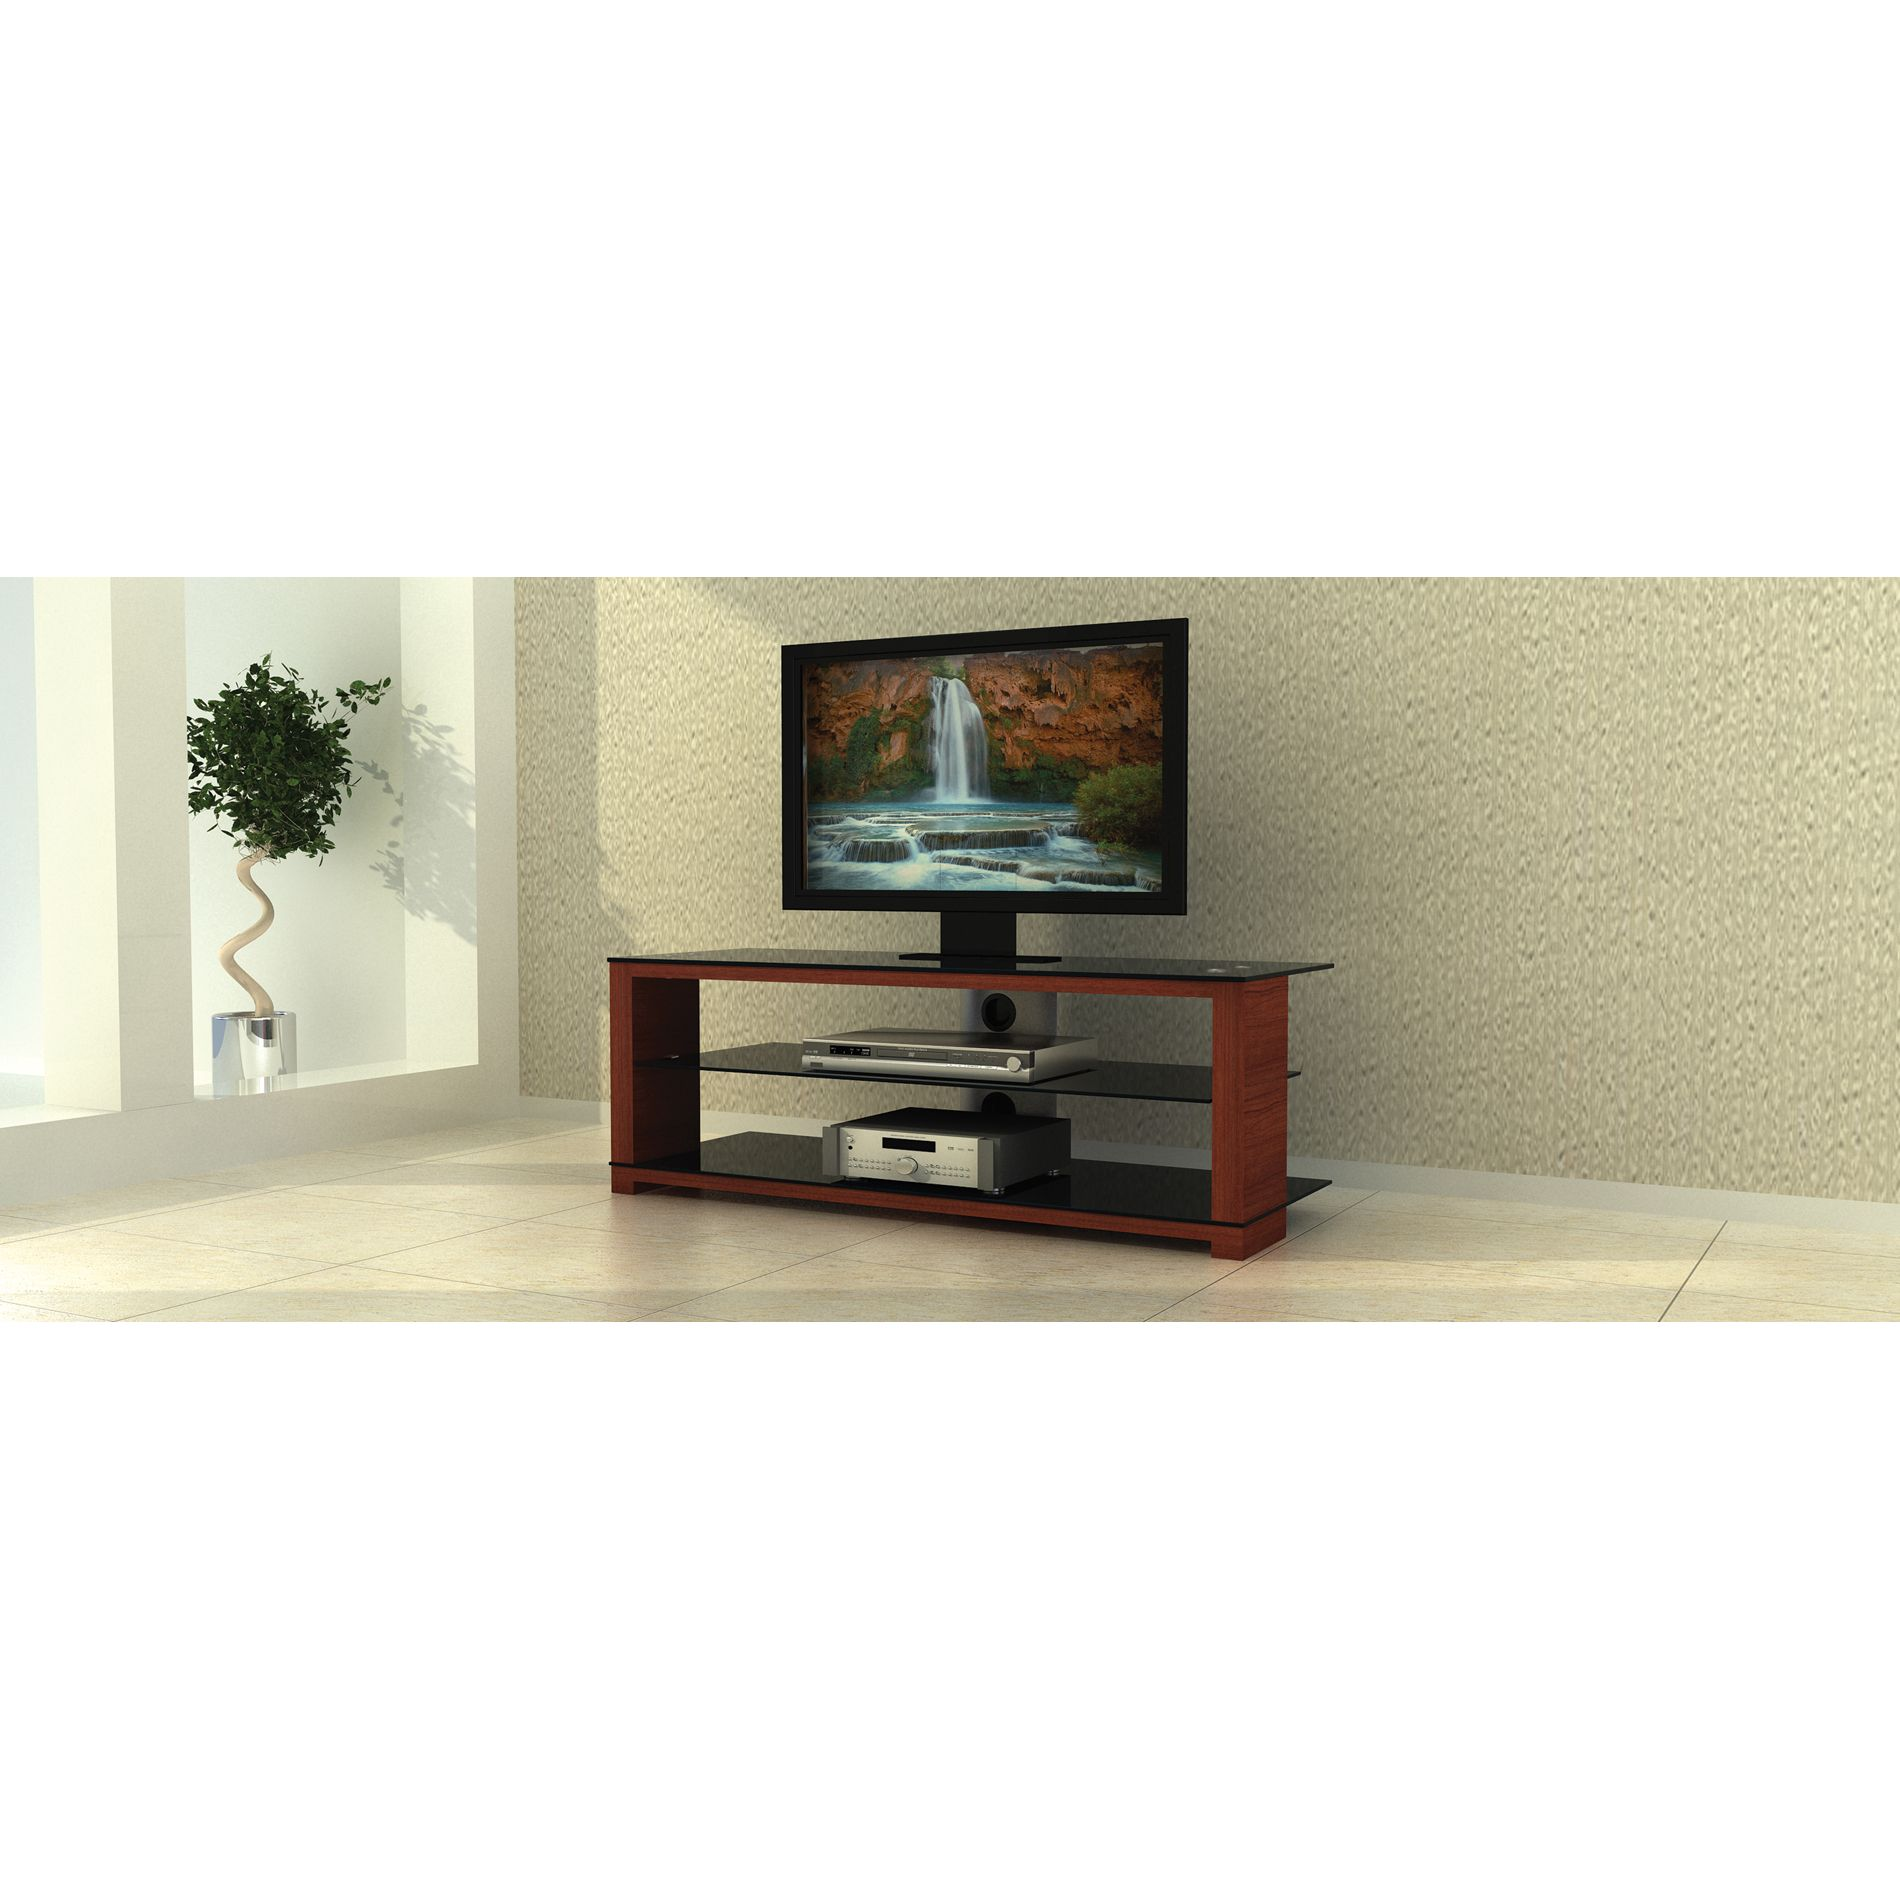 Alphaline™ Wood, Glass and Metal TV Stand